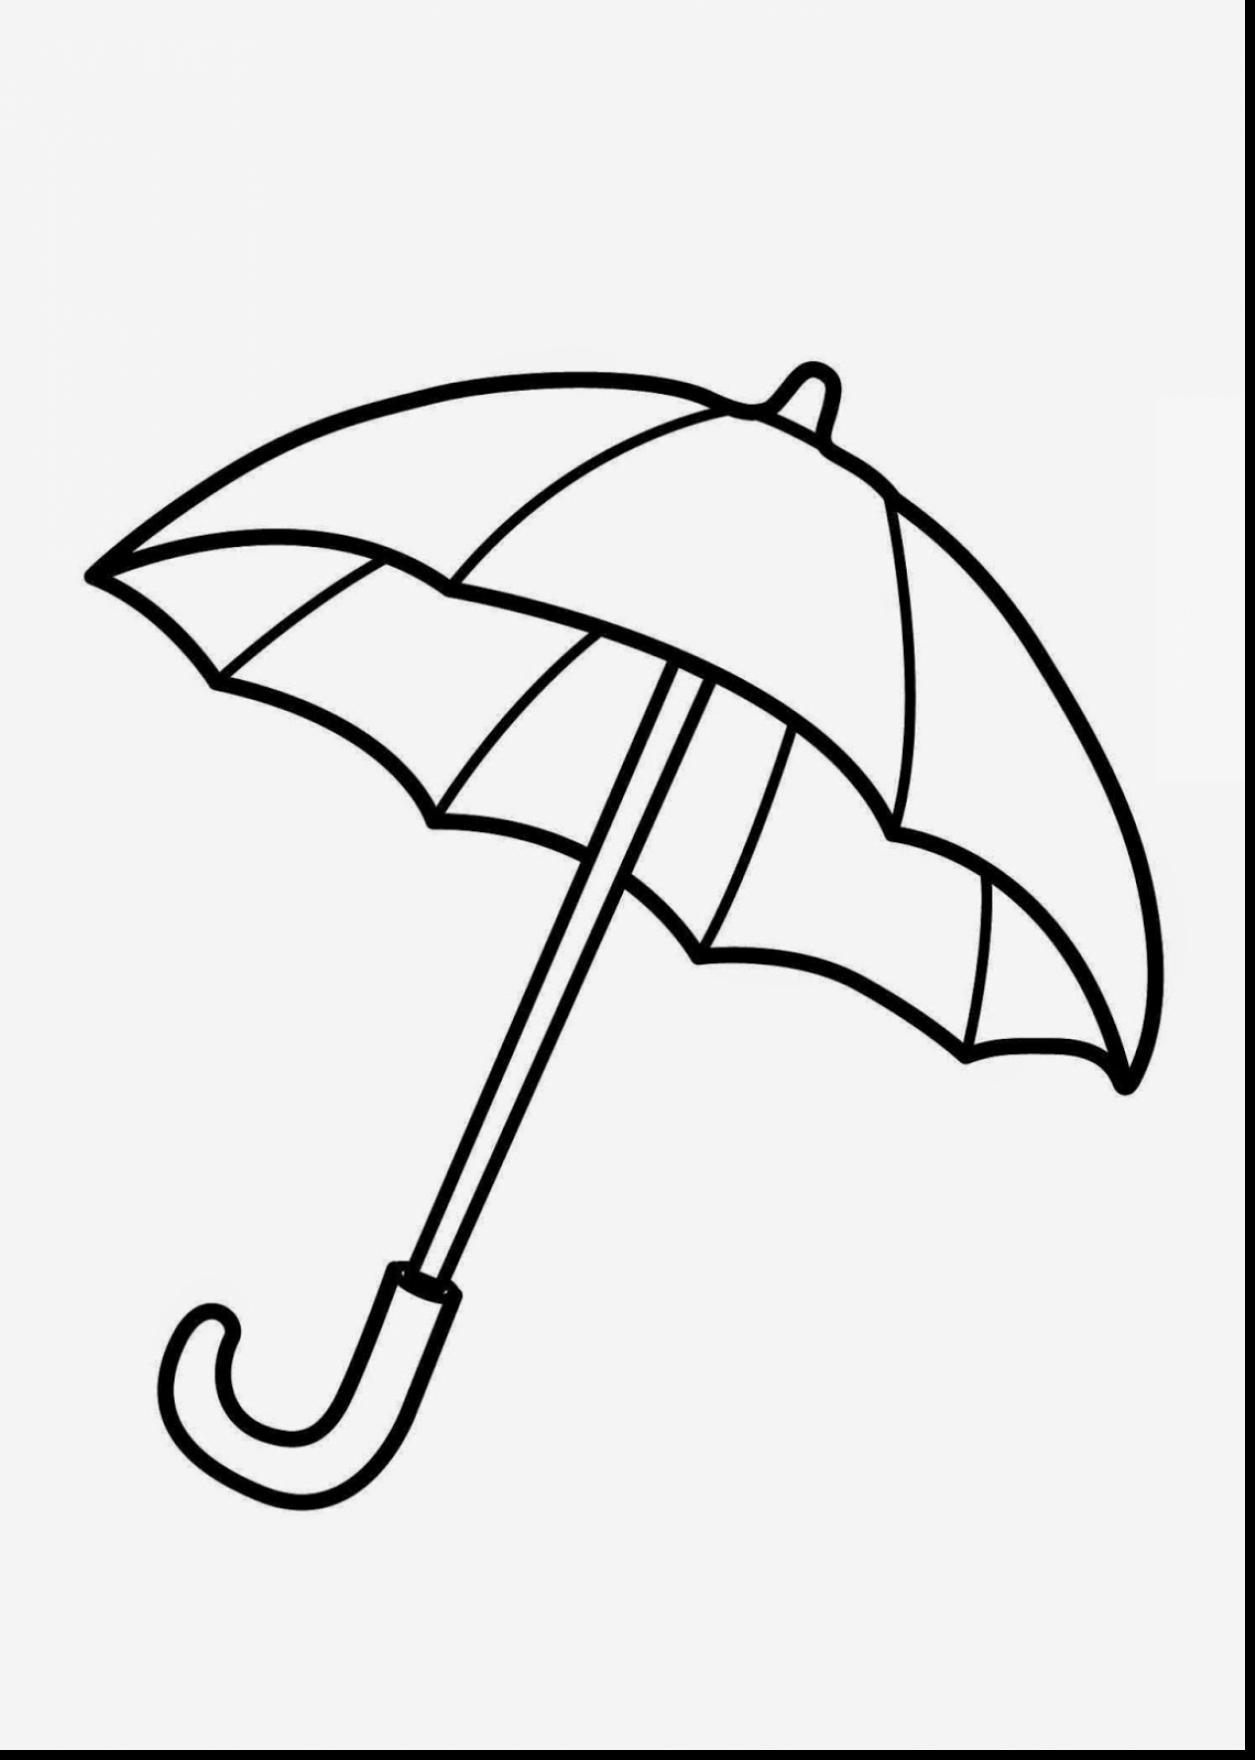 1255x1760 Surprising How To Draw Closed Umbrella With Umbrella Coloring Page